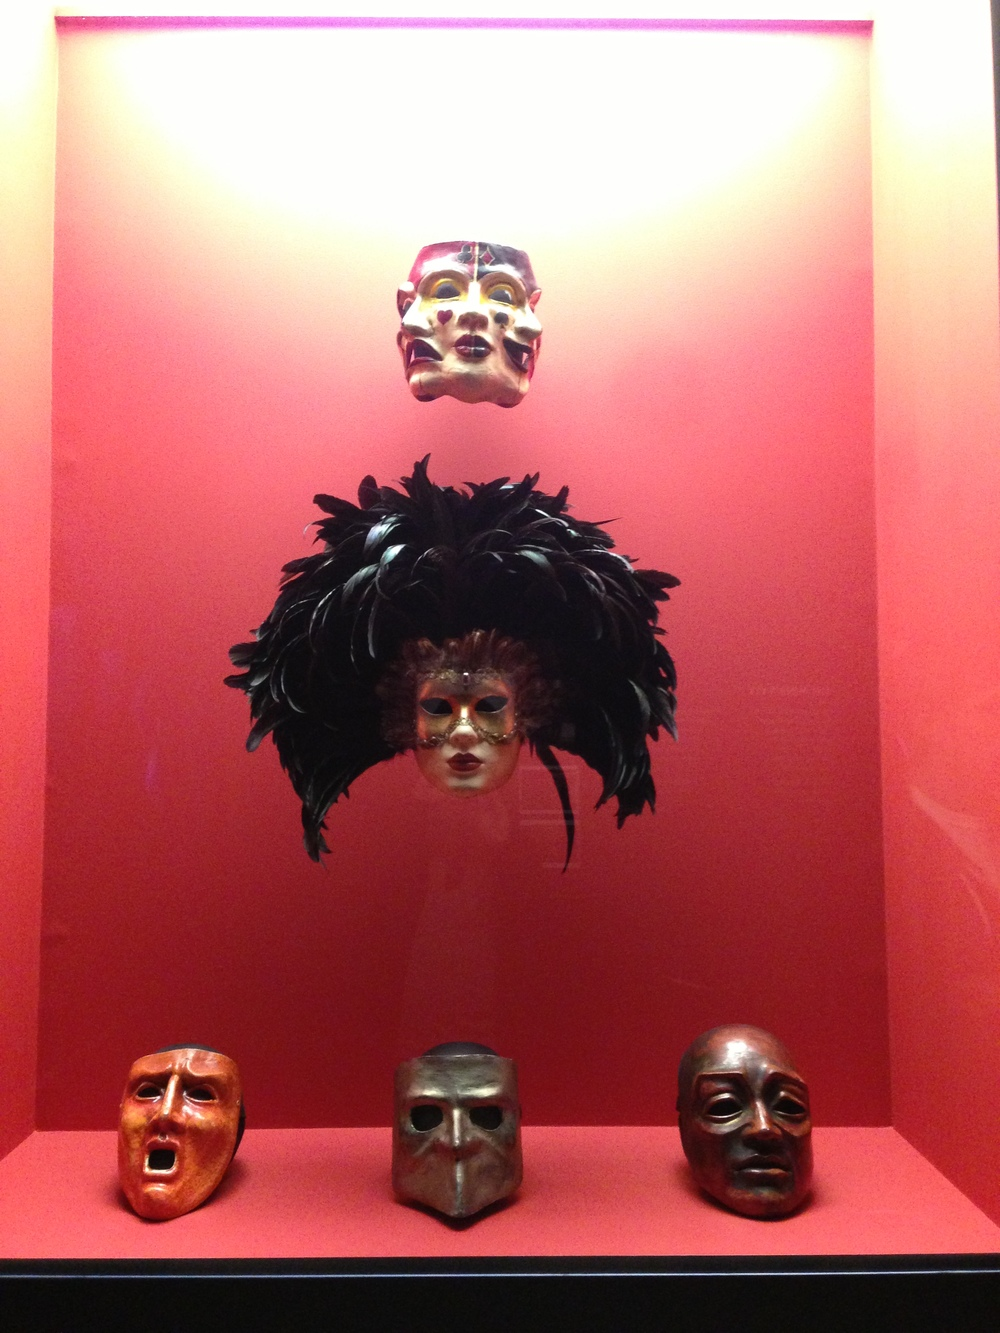 Last but not least, a sampling of the spooky masquerade masks from Eyes Wide Shut.